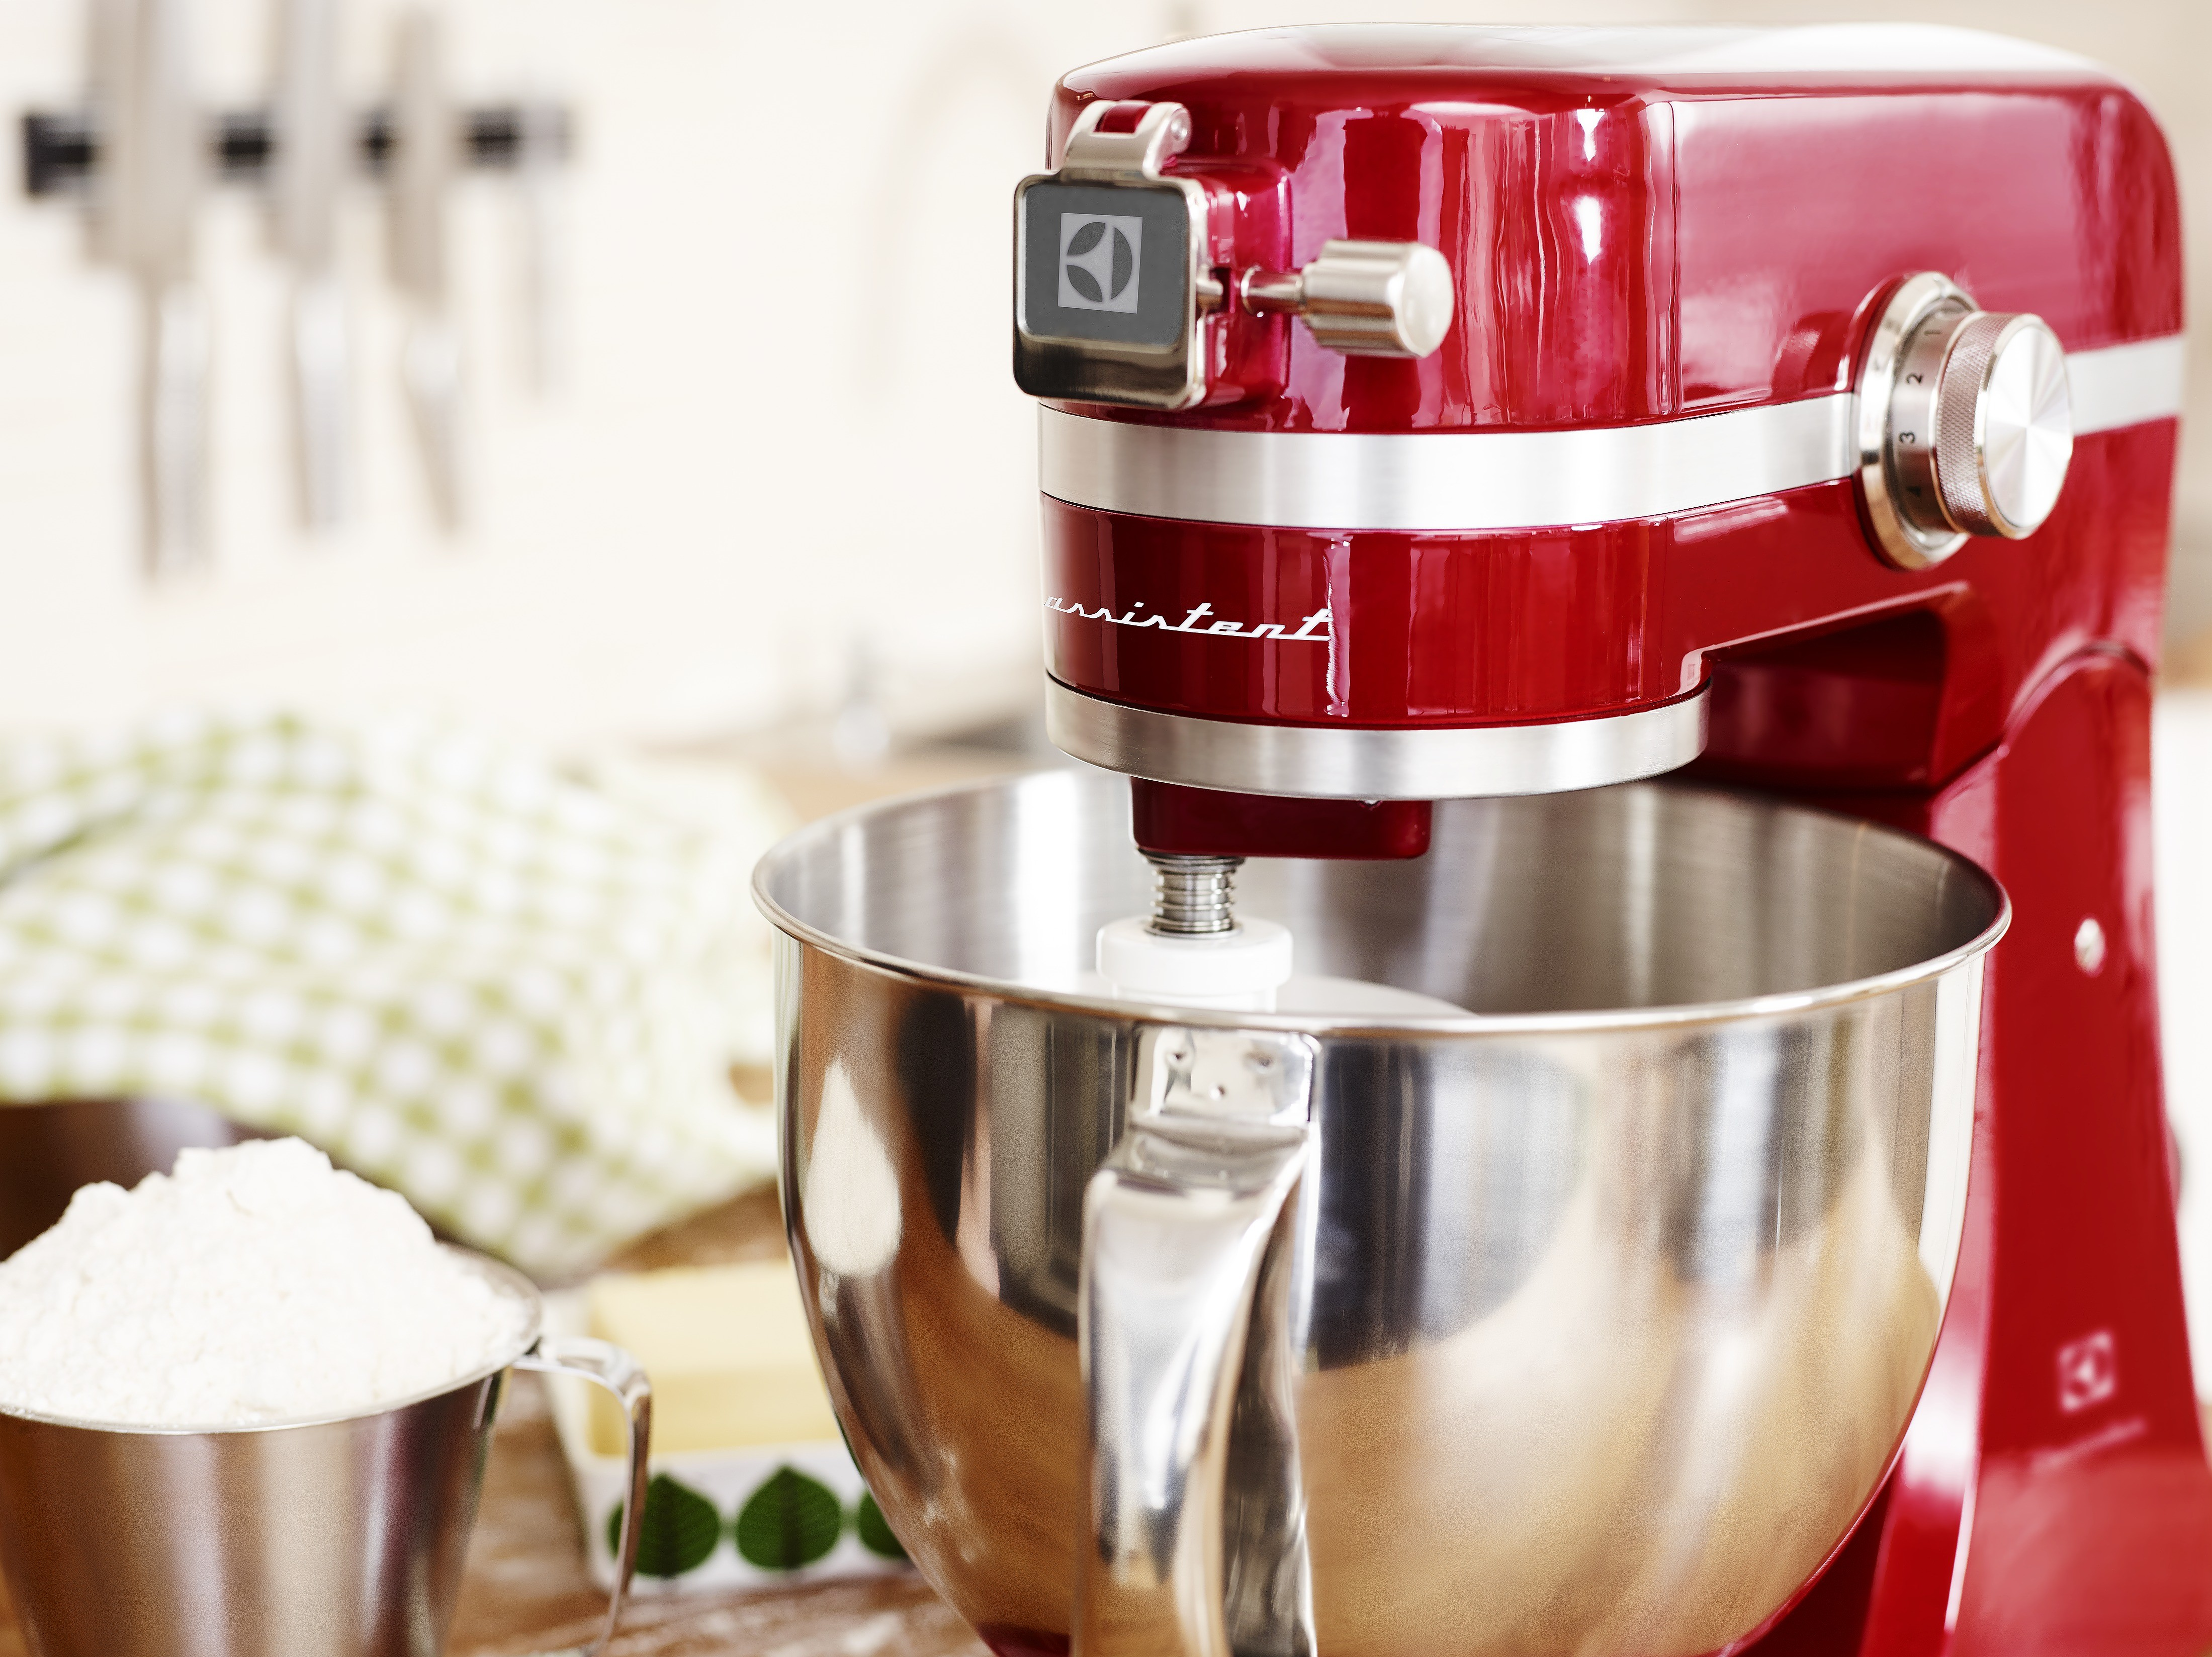 electrolux_assistent_red_image3.jpg